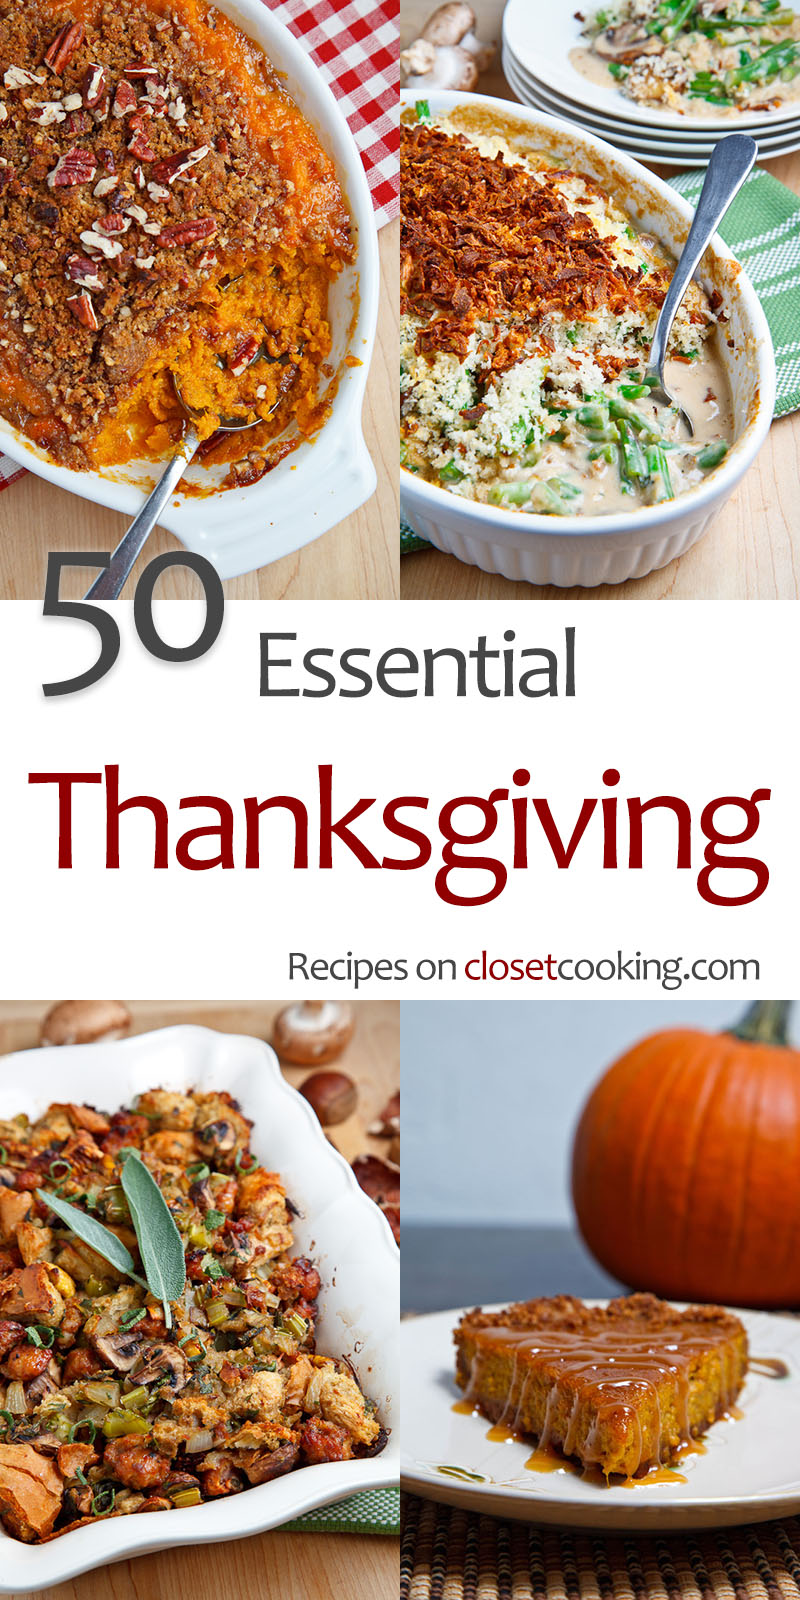 50 Essential Thanksgiving Recipes